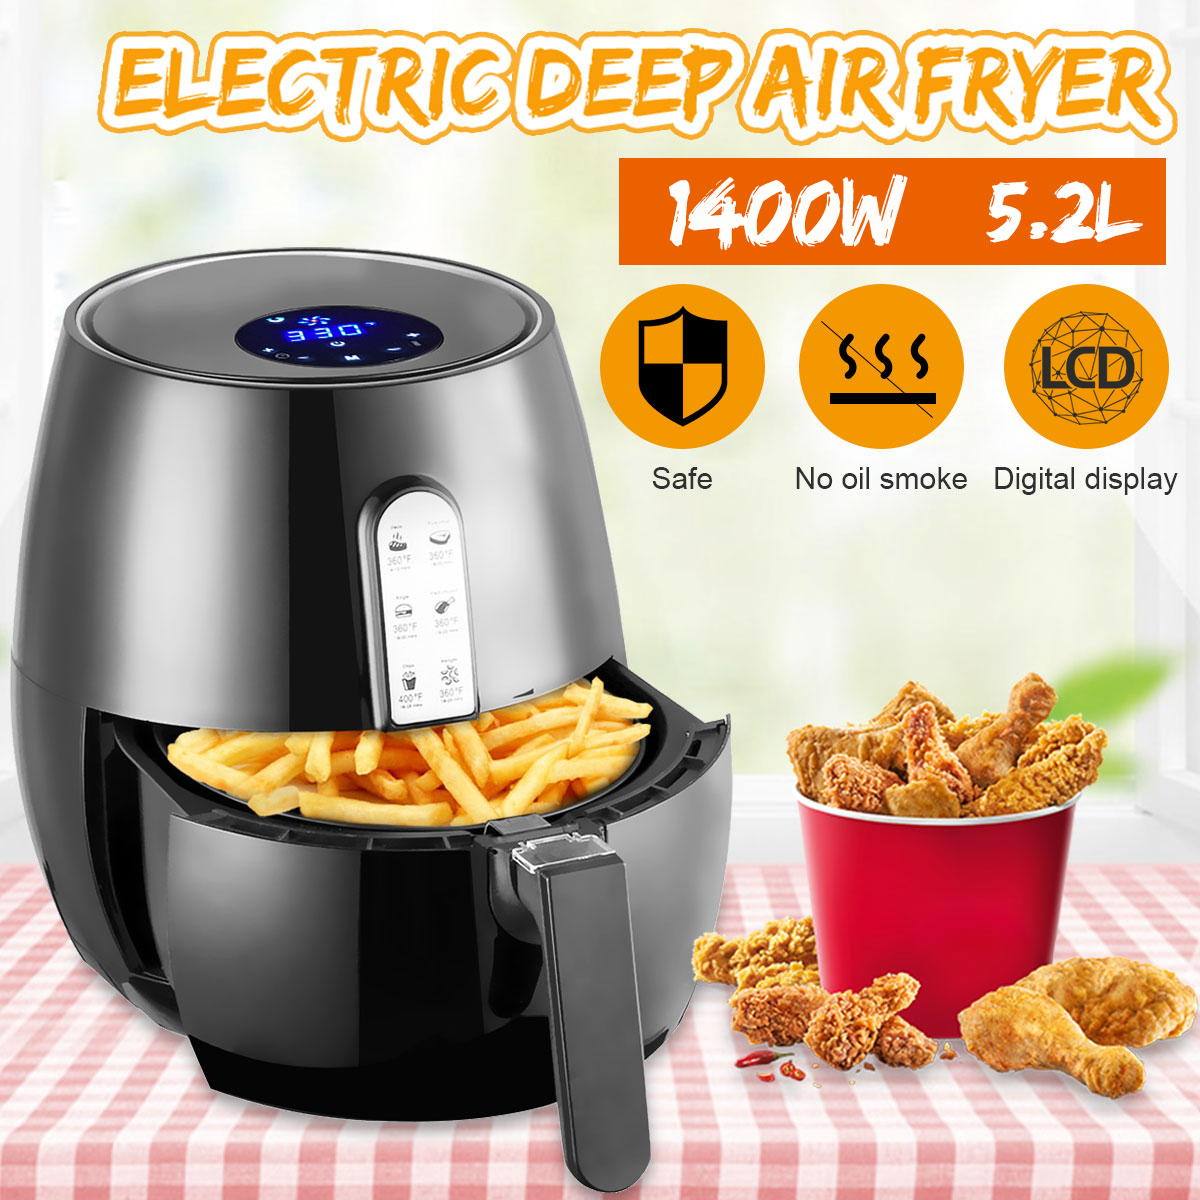 1400W 5.2L Health Fryer Cooker Smart Touch LCD Airfryer Pizza Oil Free Air Fryer Multi Function Smart Fryer For French Fries